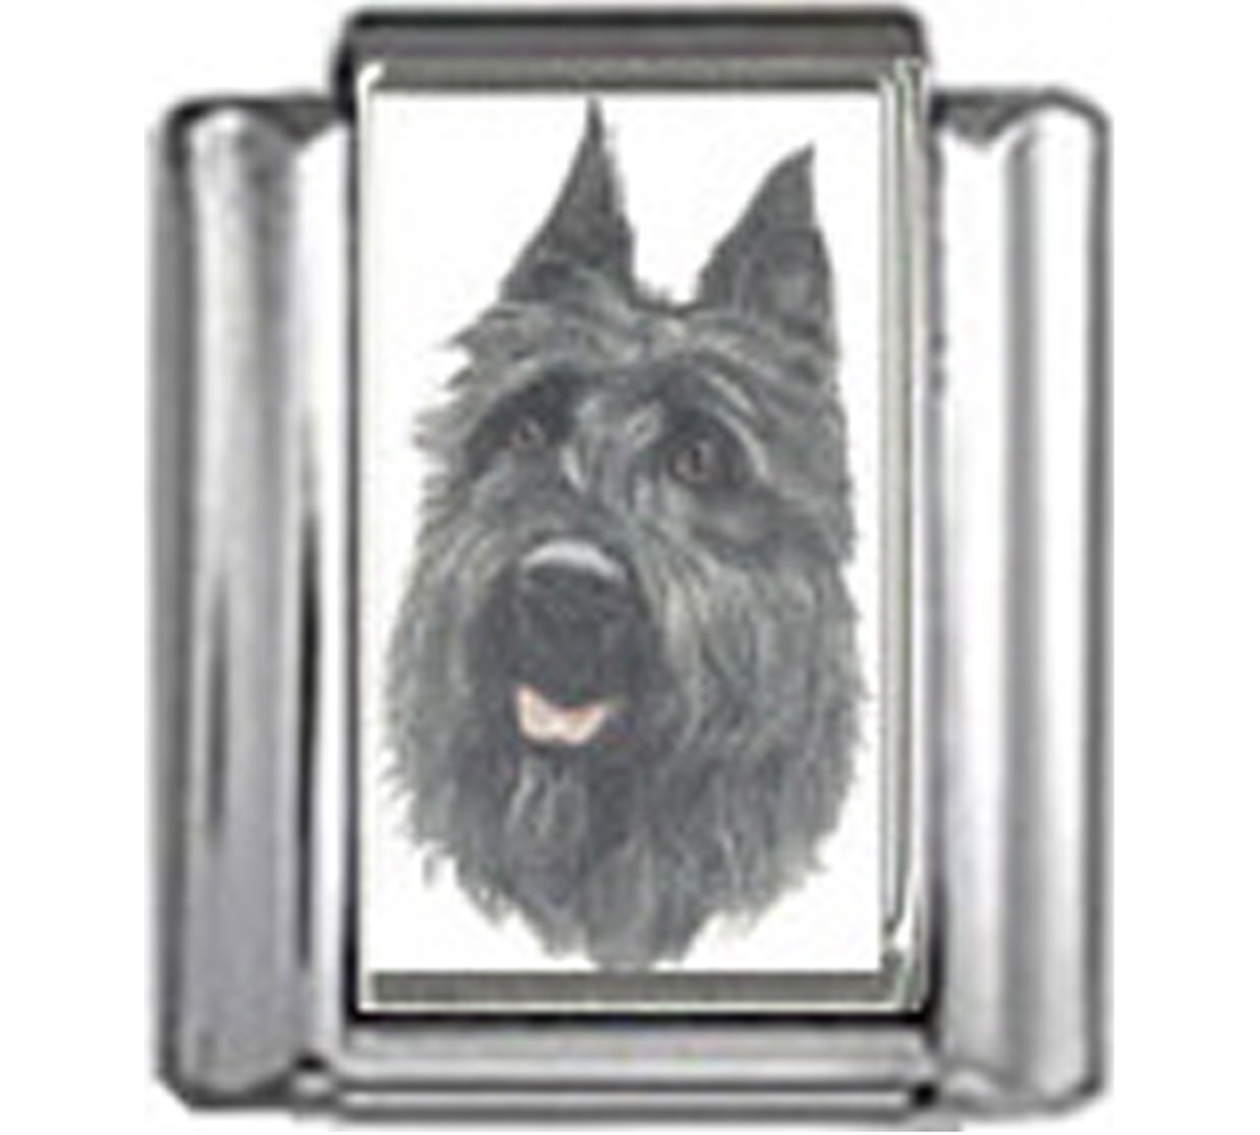 DG098-Bouvier-des-Flandres-Dog-3